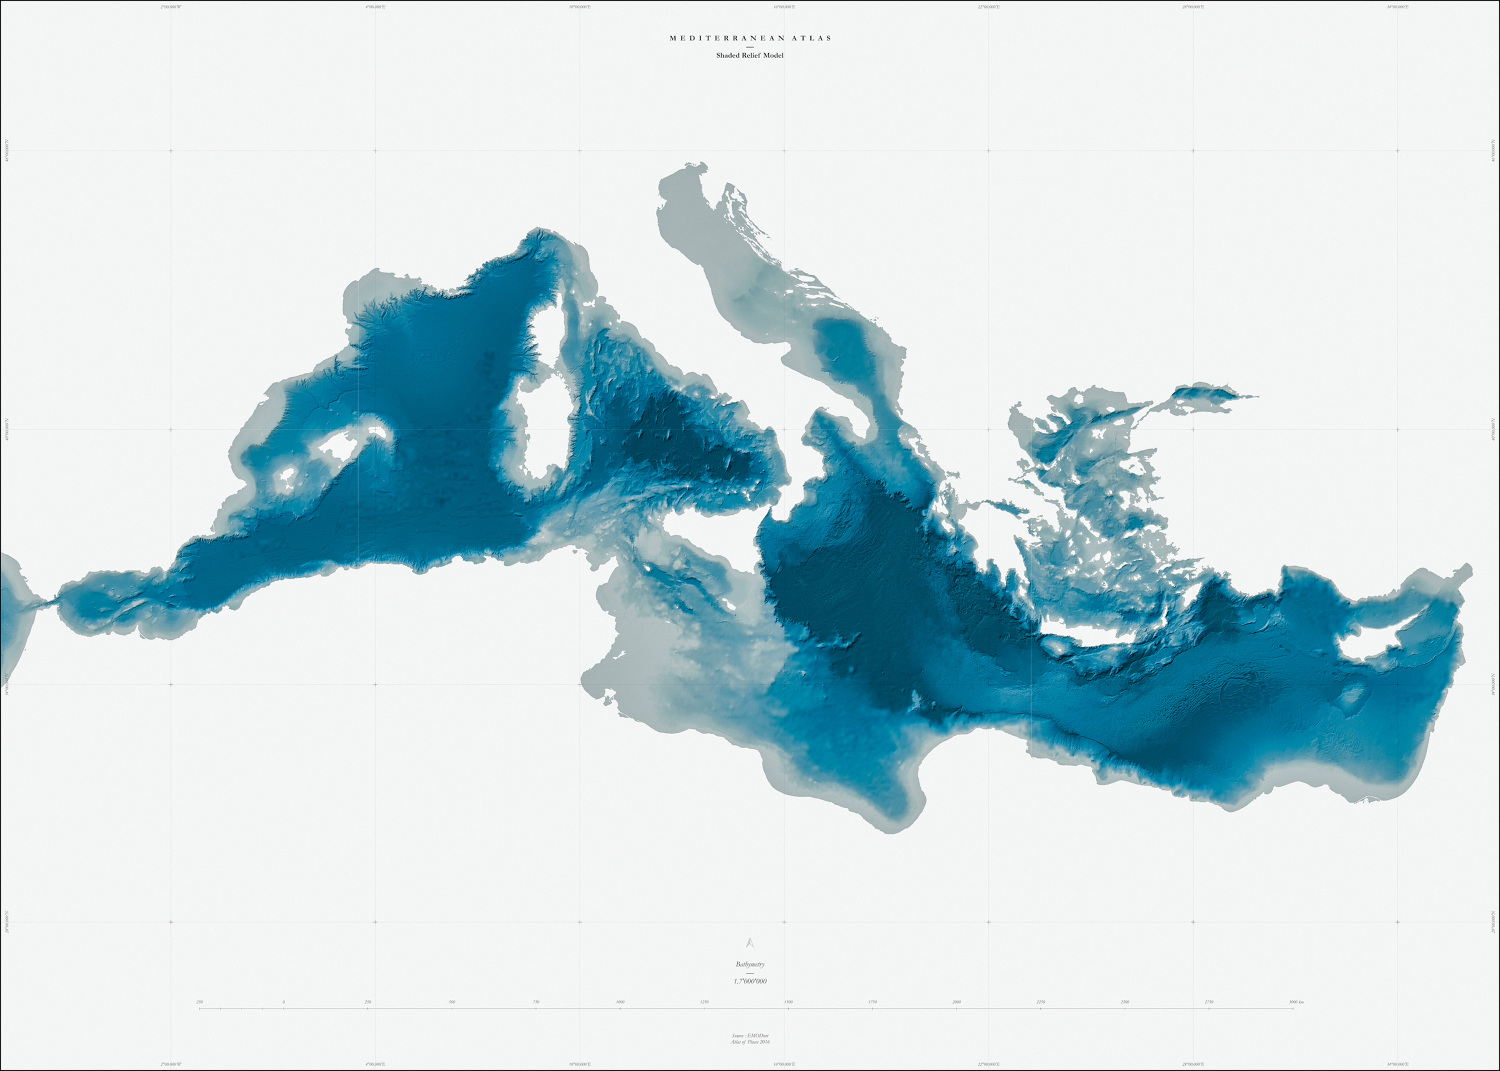 Muriz Djurdjevic and Thomas Paturet, ATLAS OF PLACES. Mediterranean Sea Collection